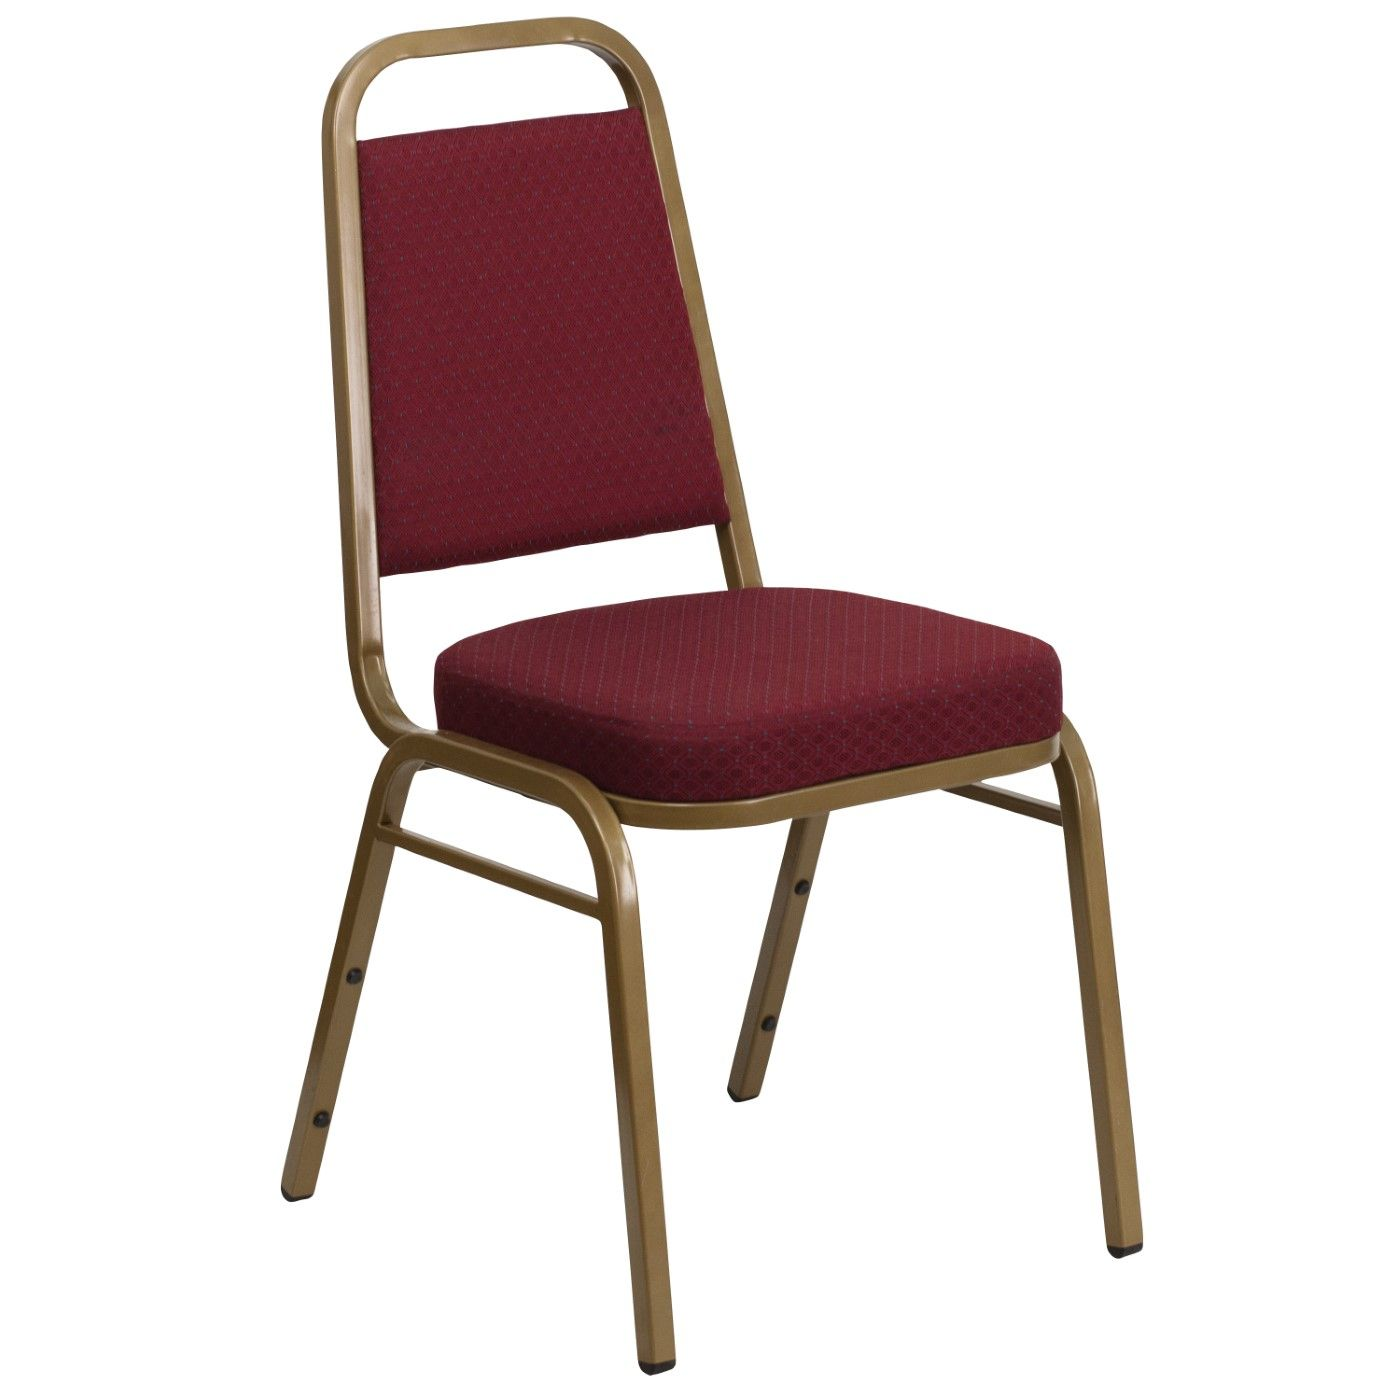 TOUGH ENOUGH Series Trapezoidal Back Stacking Banquet Chair in Burgundy Patterned Fabric - Gold Frame